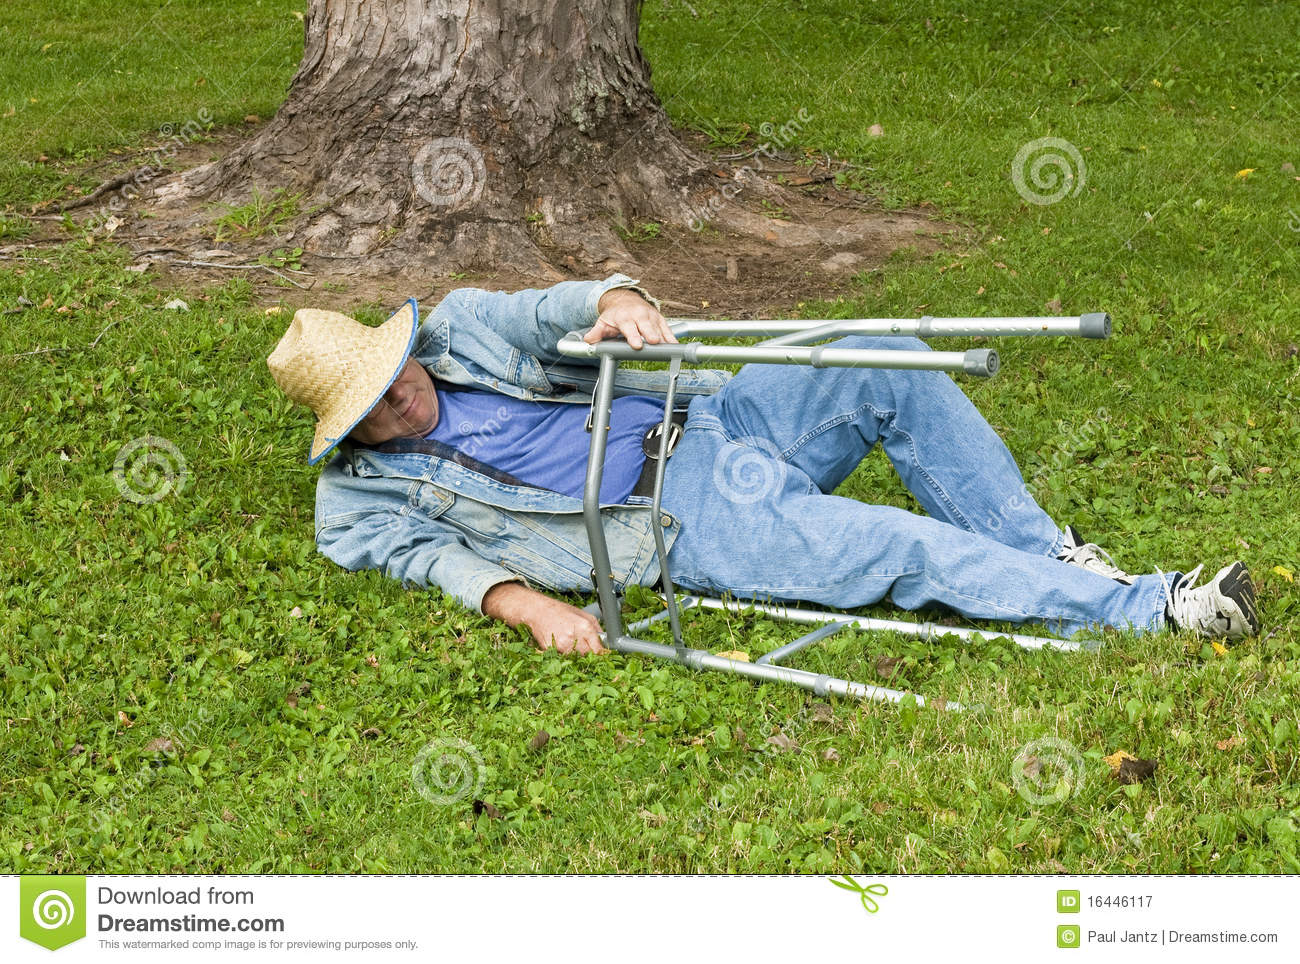 Will Live House Destroyed Much Will Cost likewise Your Hospital Stay moreover Royalty Free Stock Photography Man Walker Falling Down Park Image16446117 in addition 14 Types Baby Poop And What They Mean moreover Rainbow Dash Lying Down 338453367. on nurse falling down